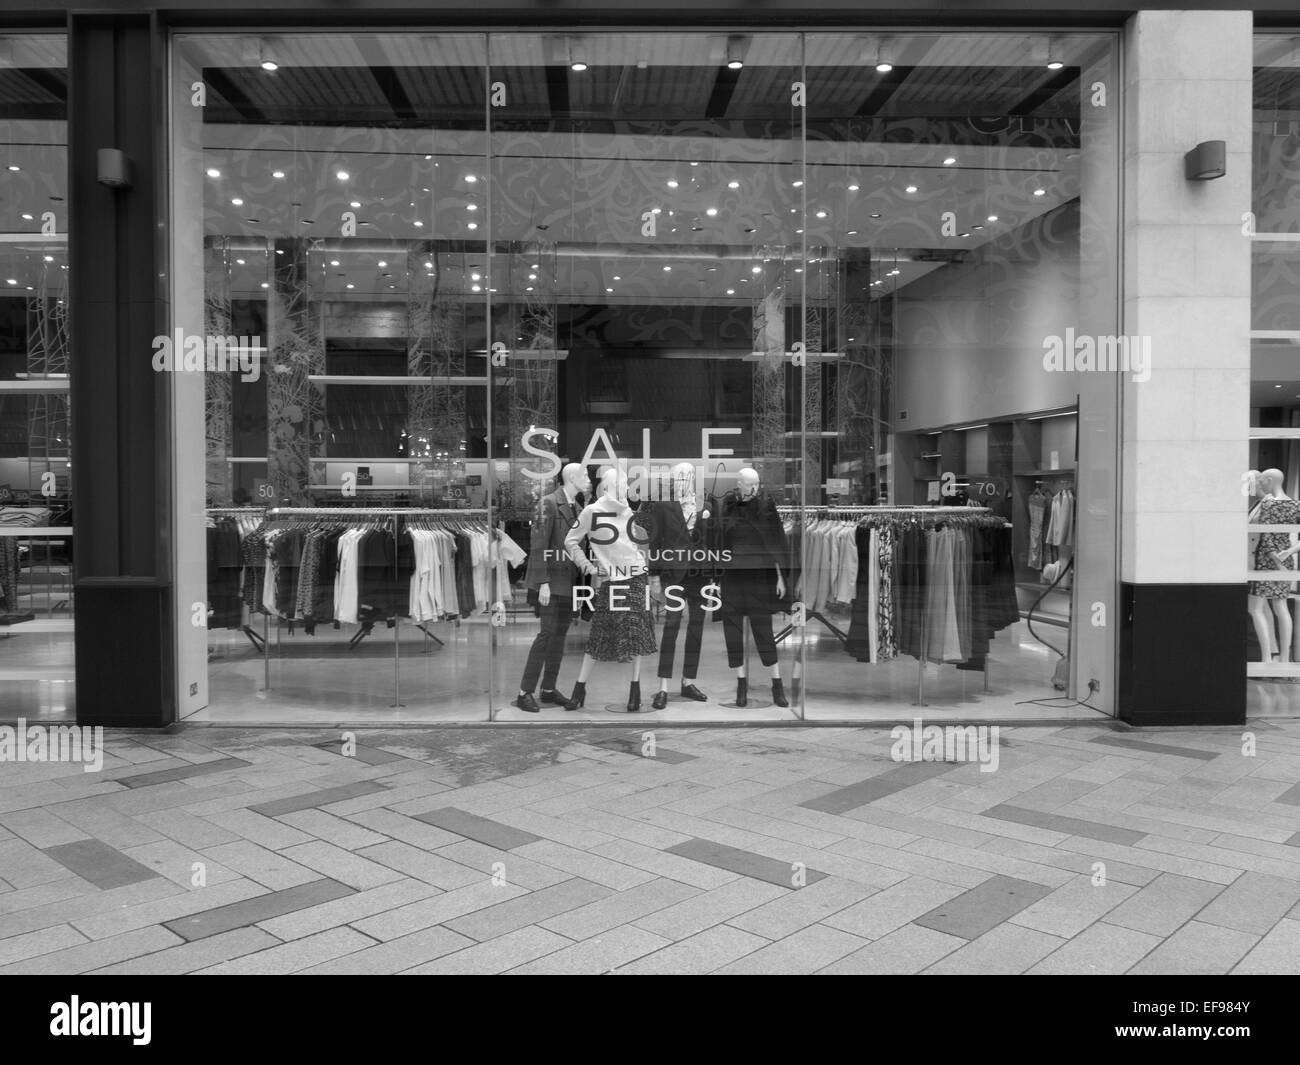 REISS store shop frontage, HIGHCROSS SHOPPING CENTRE LEICESTER, UK. on 22nd JANUARY 2015 from BATH HOUSE STREET. - Stock Image